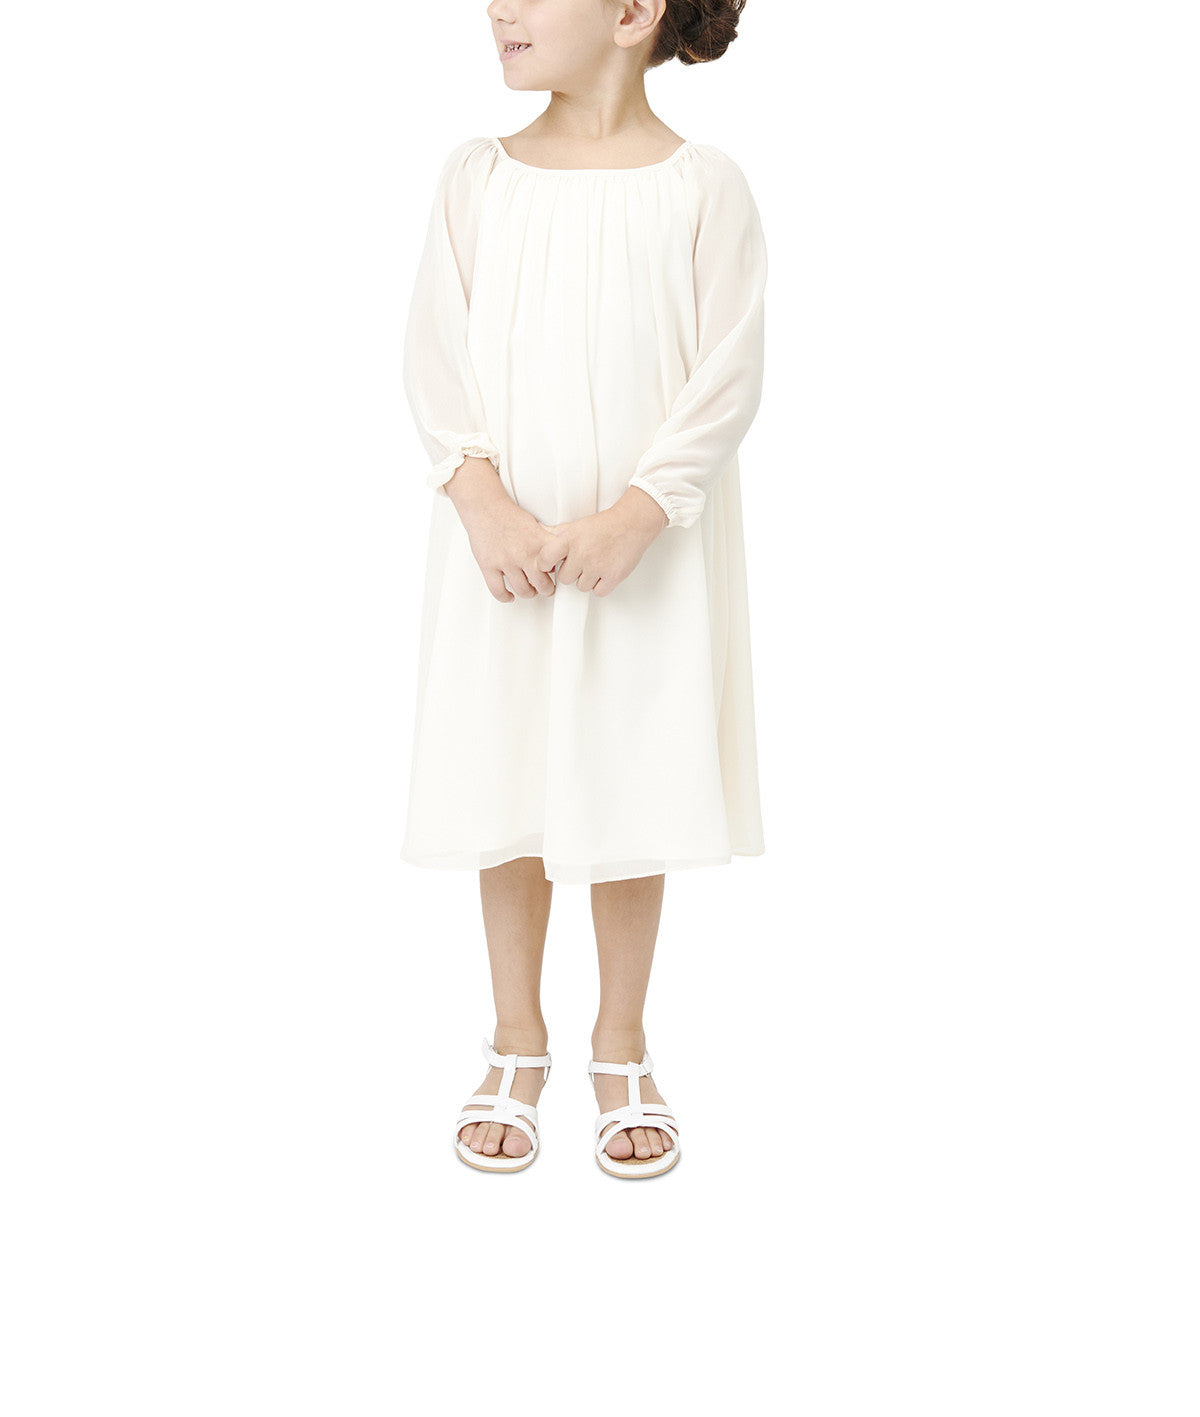 Joanna August Flower Girl Ella Dress